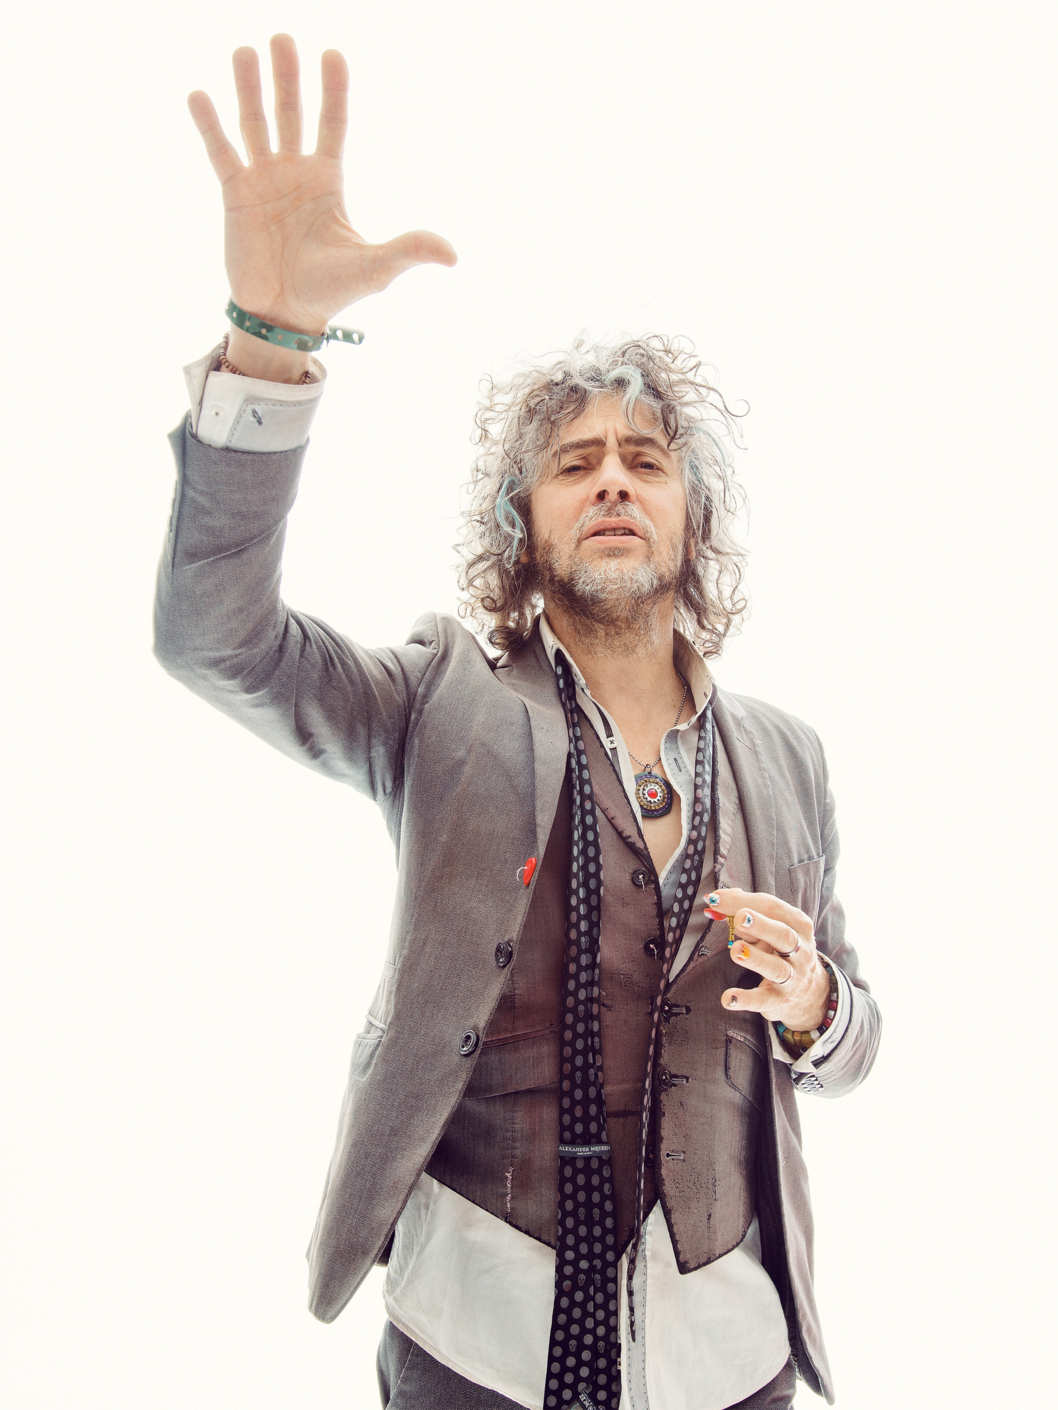 Wayne Coyne of the Flaming Lips photographed at Splashlight Studios in New York City